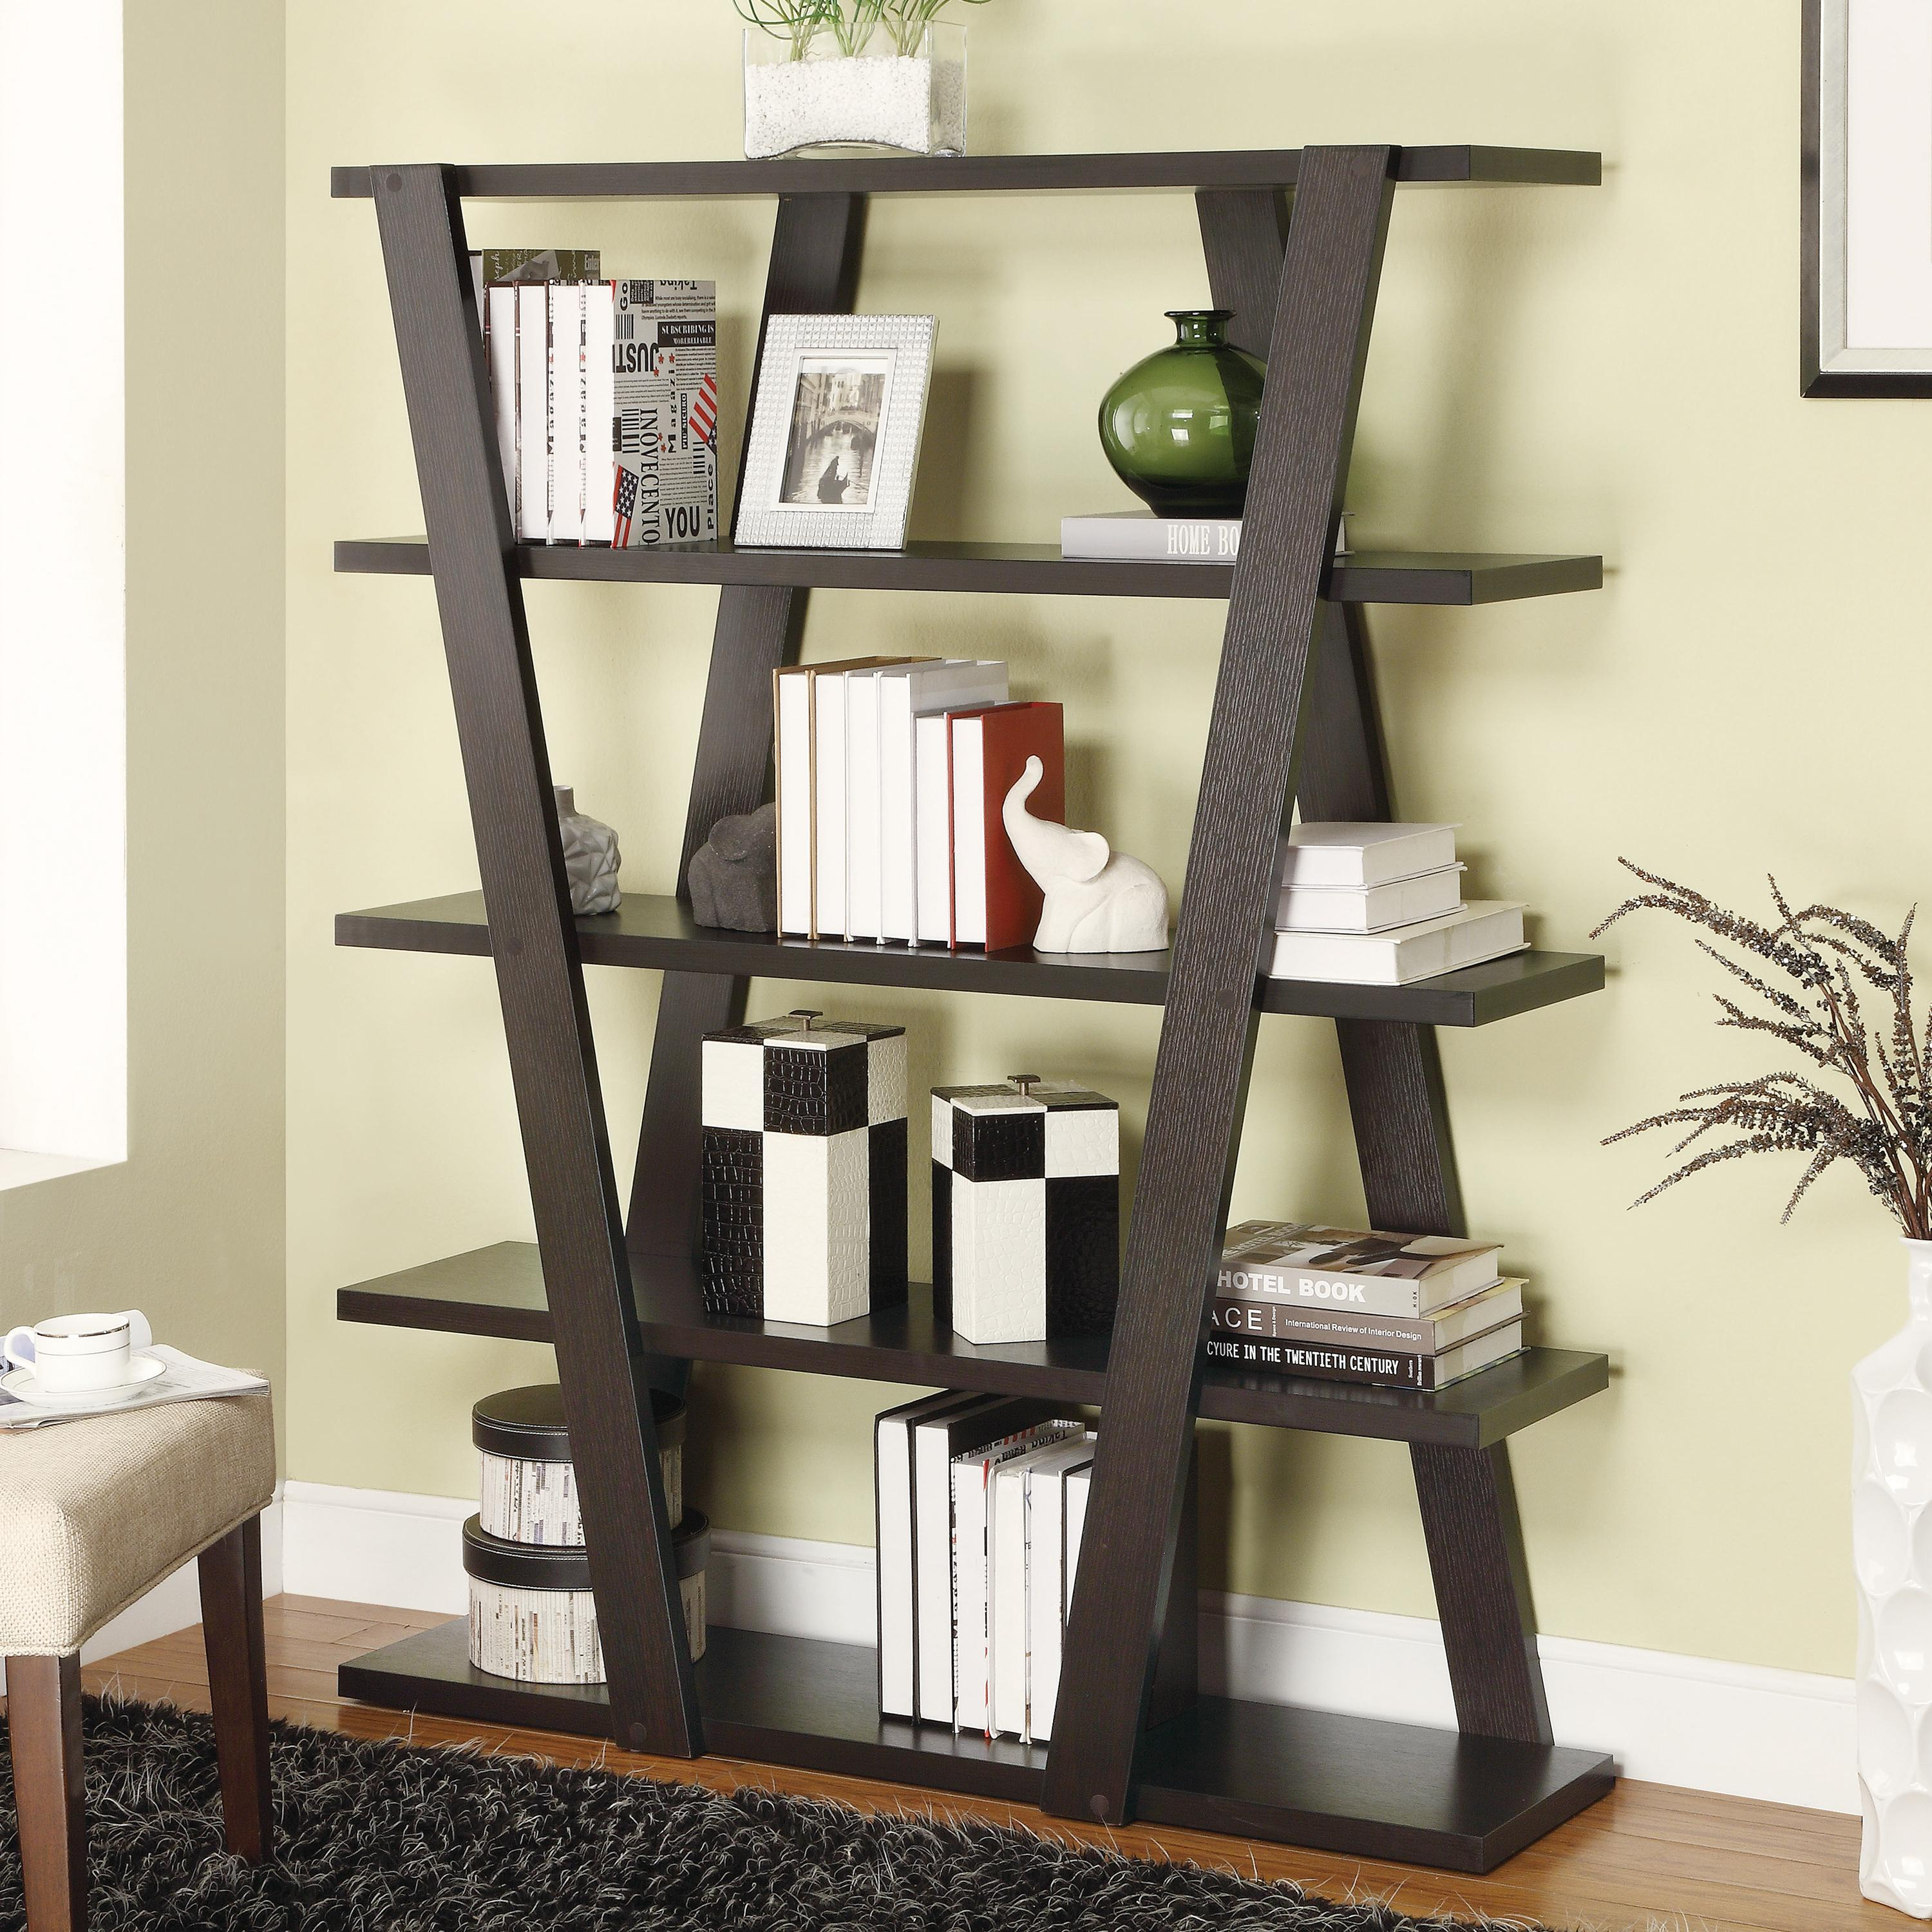 Bookcases Modern Bookshelf With Inverted Supports & Open Shelves By Coaster  At Value City Furniture